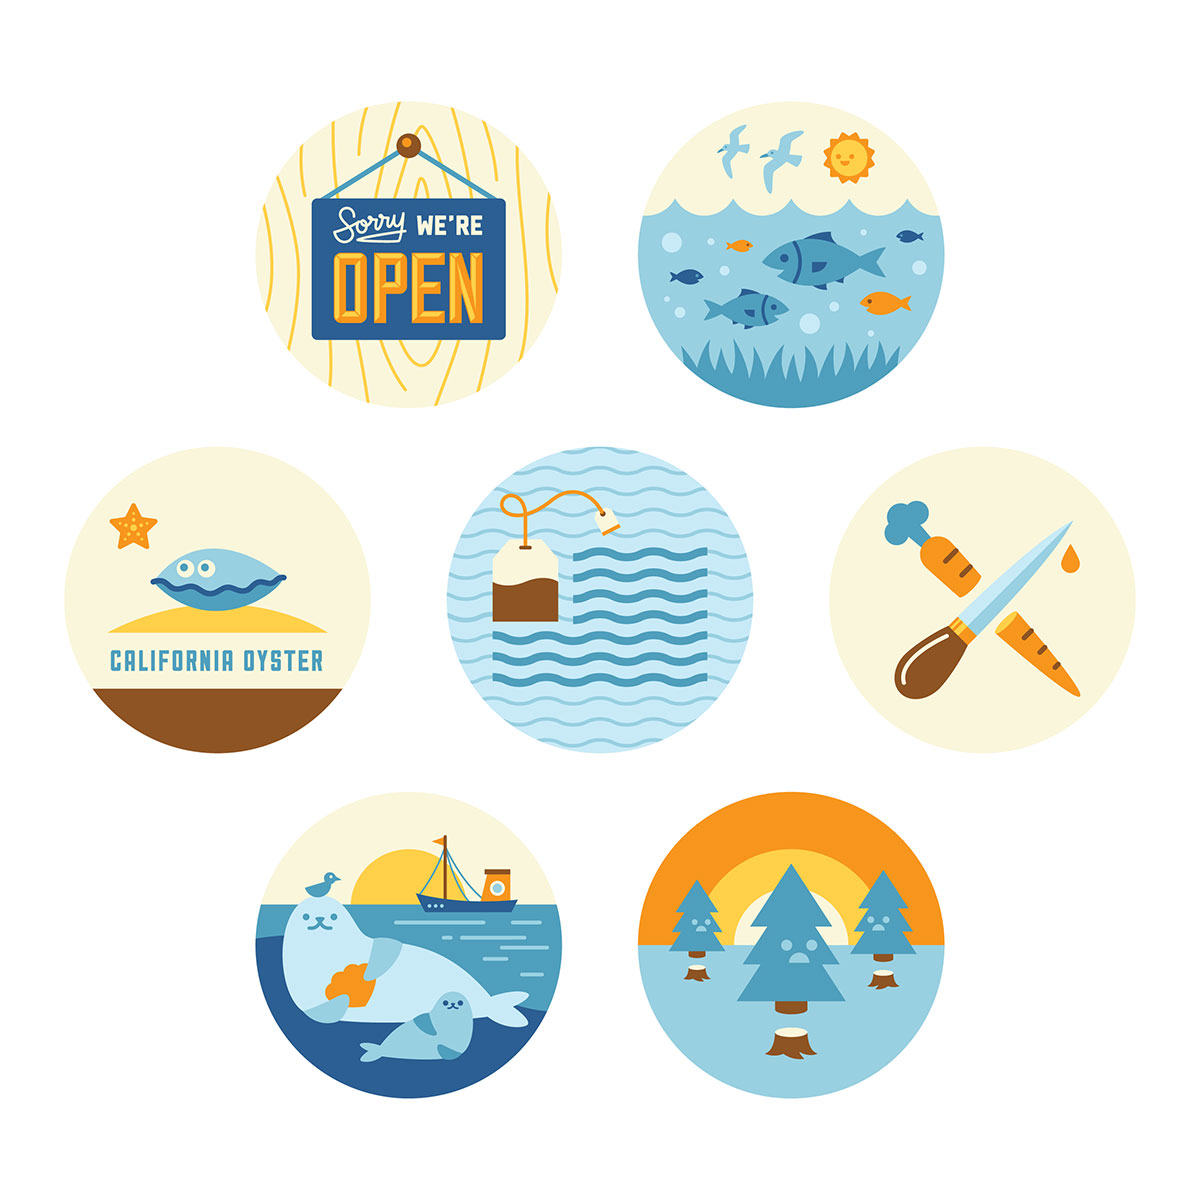 Spot illustrations about Drake Bay Oyster Company, illustrated by Helen Tseng